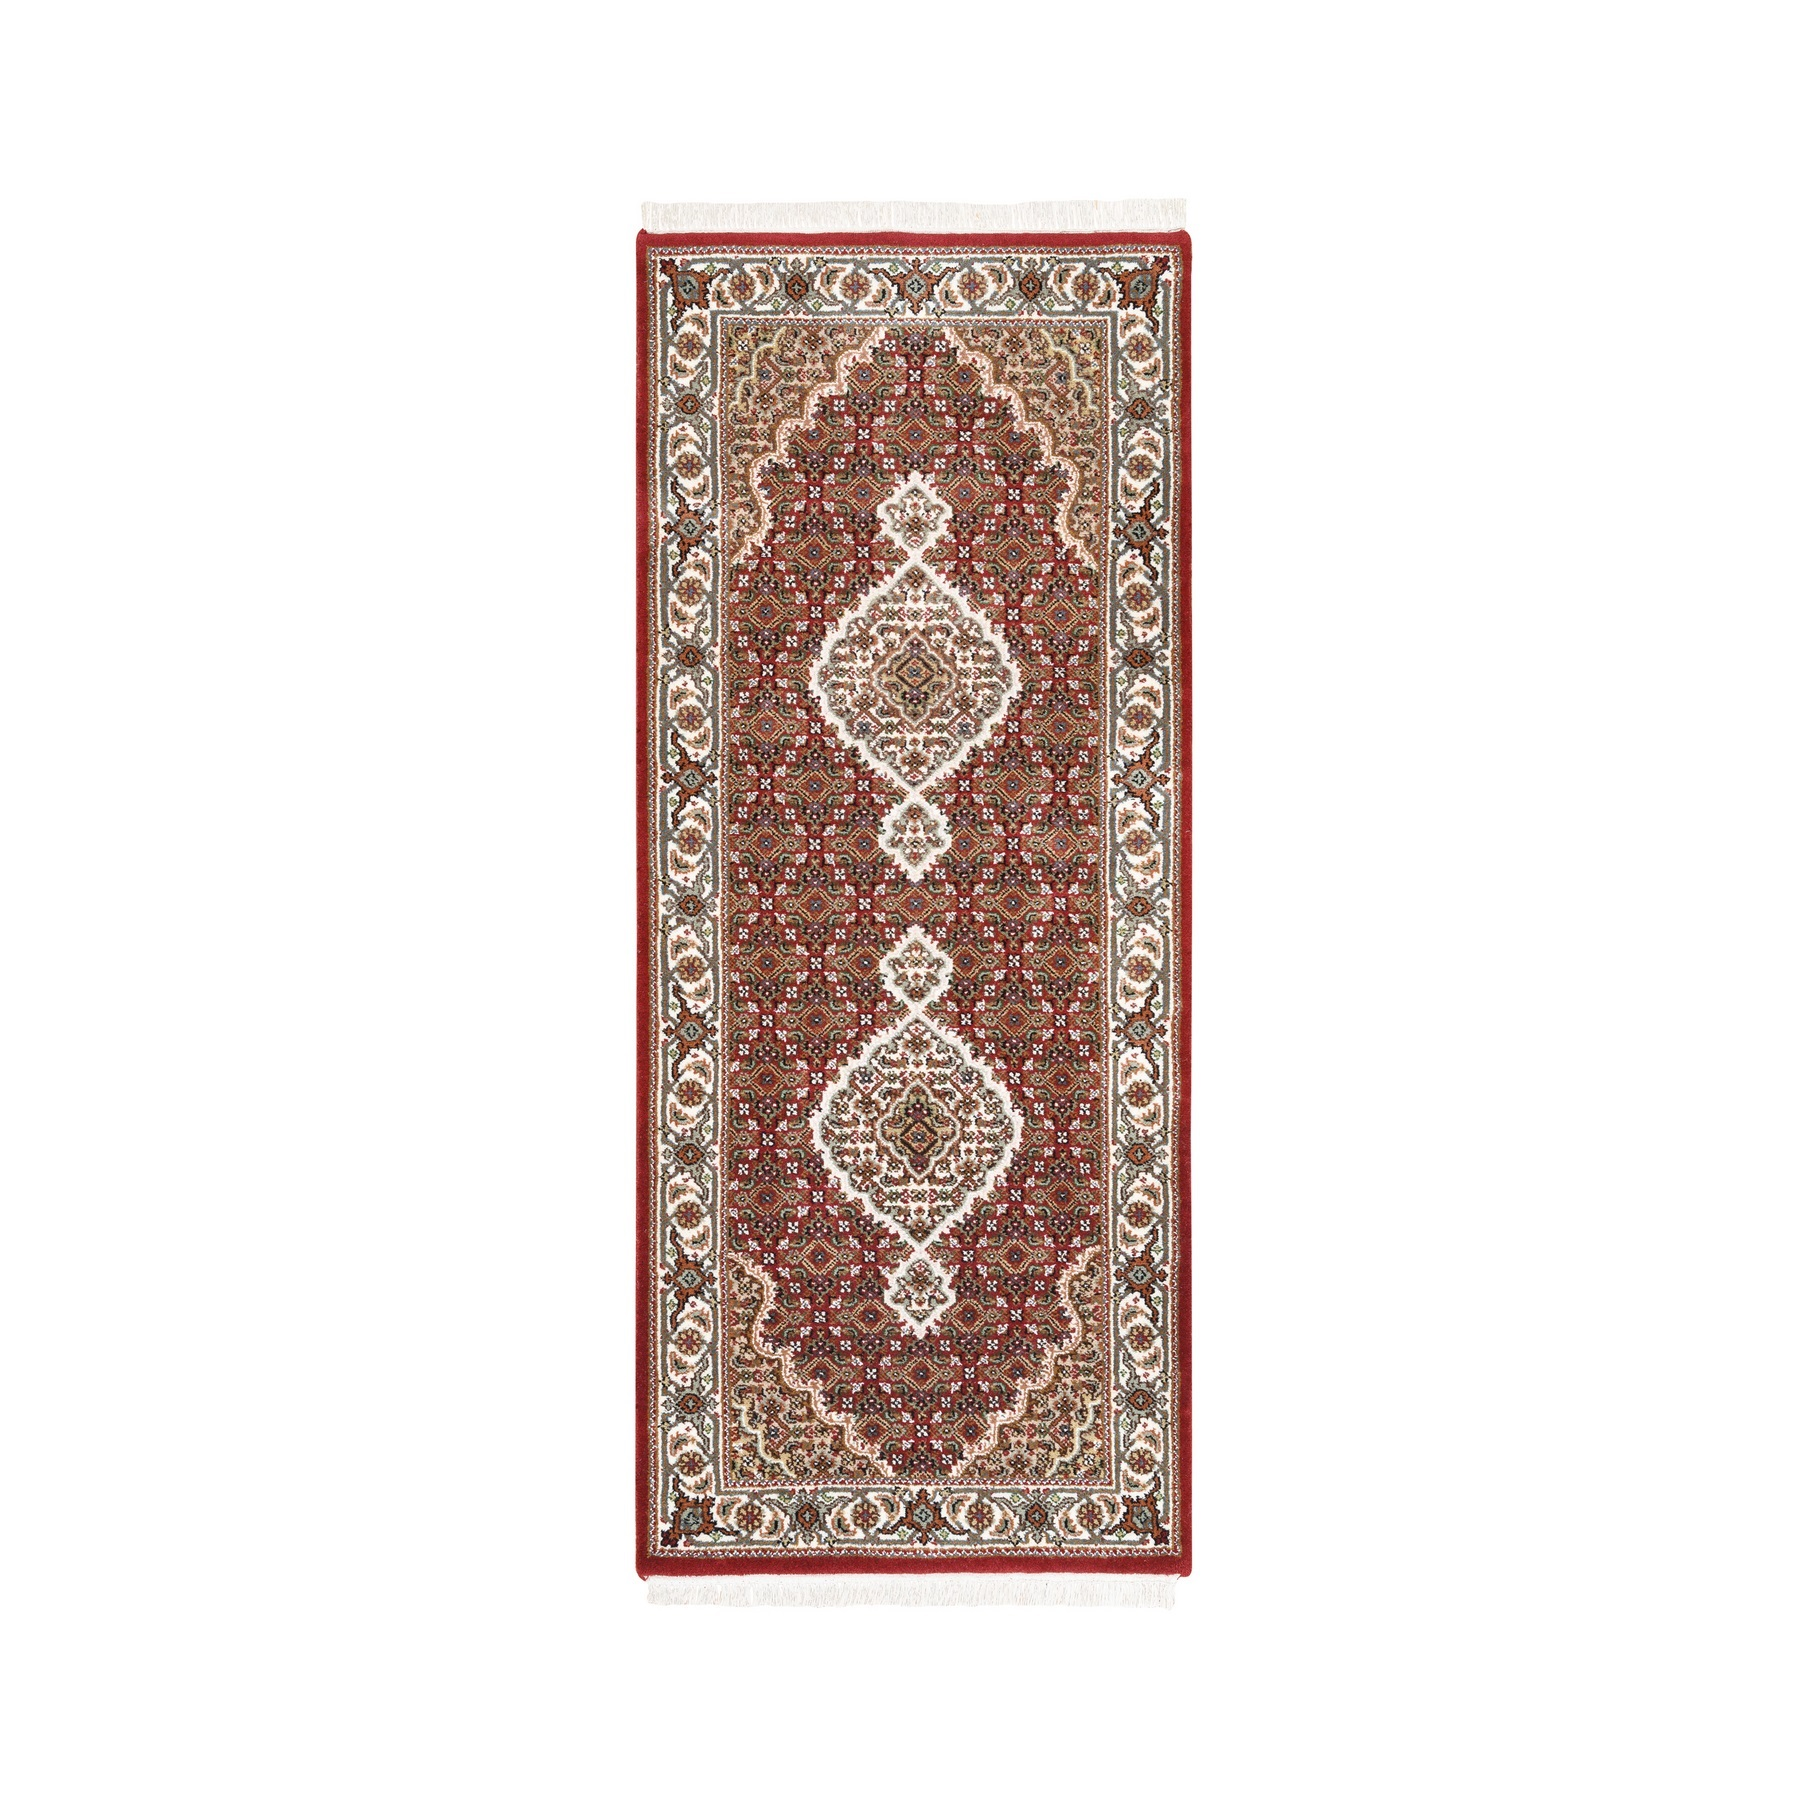 "2'8""x6'6"" Hand Woven Red Tabriz Mahi Fish Medallion Design Wool And Silk Oriental Runner Rug"